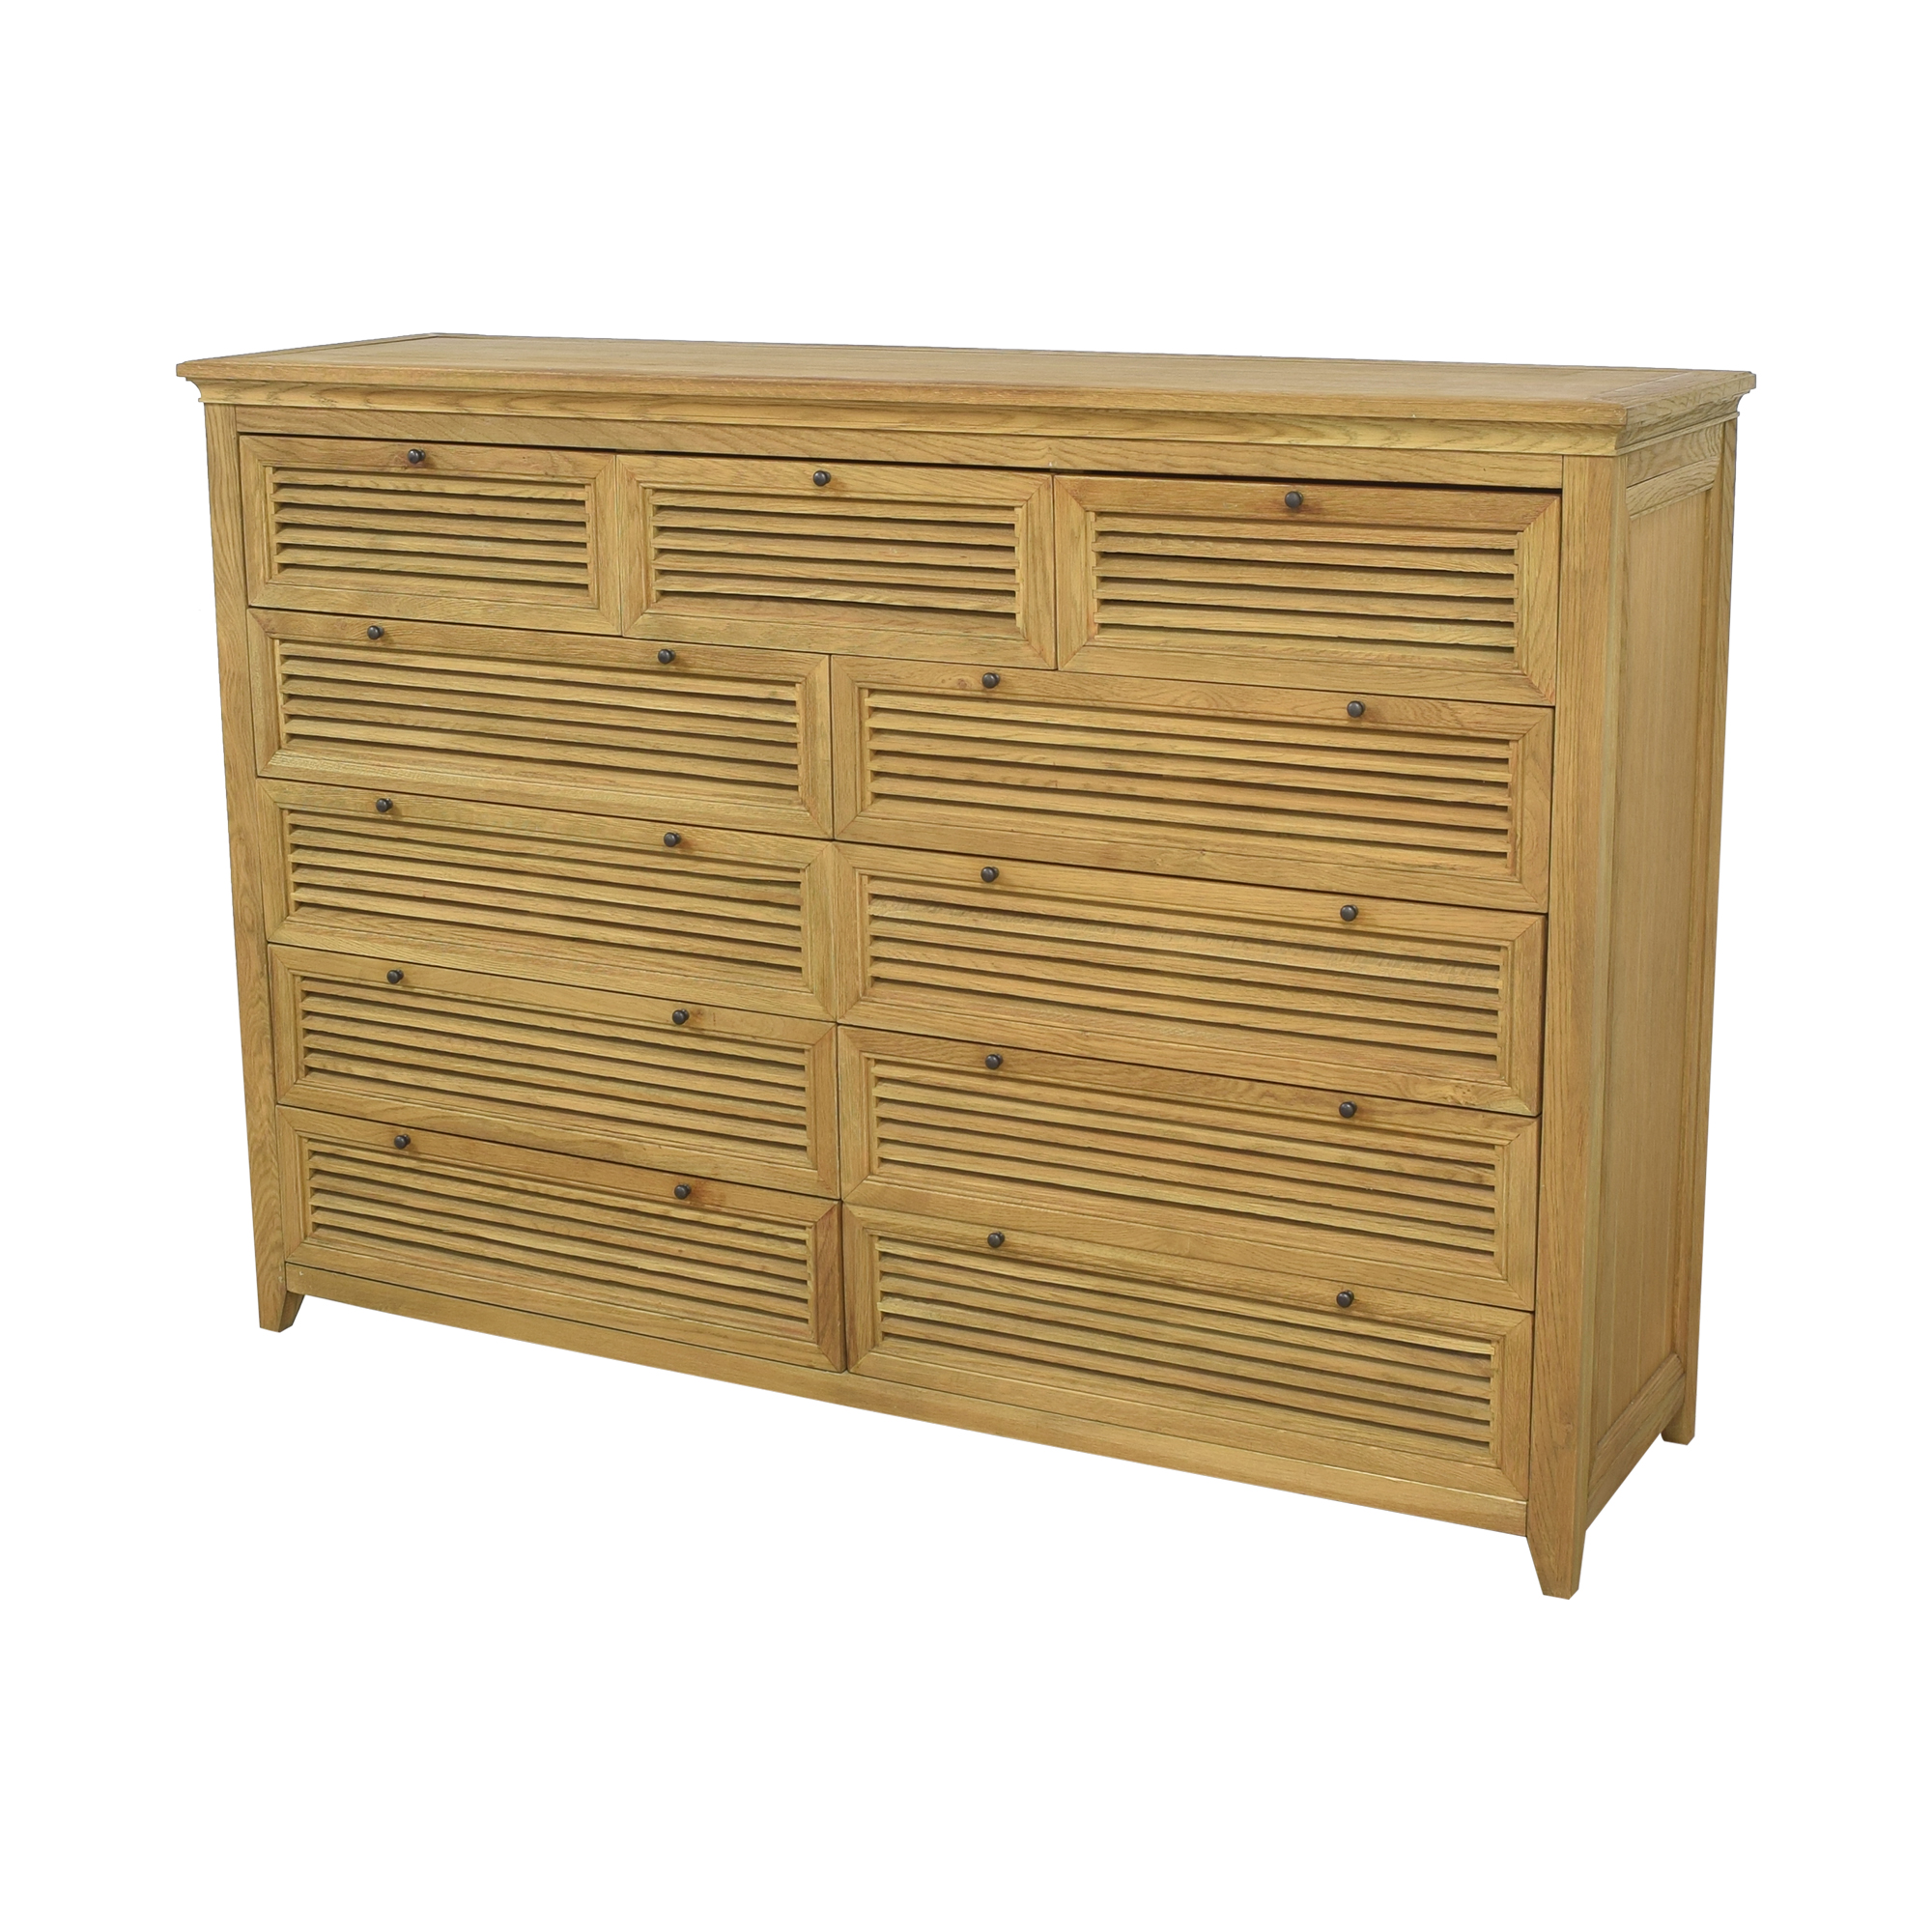 Restoration Hardware Restoration Hardware Shutter Eleven Drawer Dresser for sale